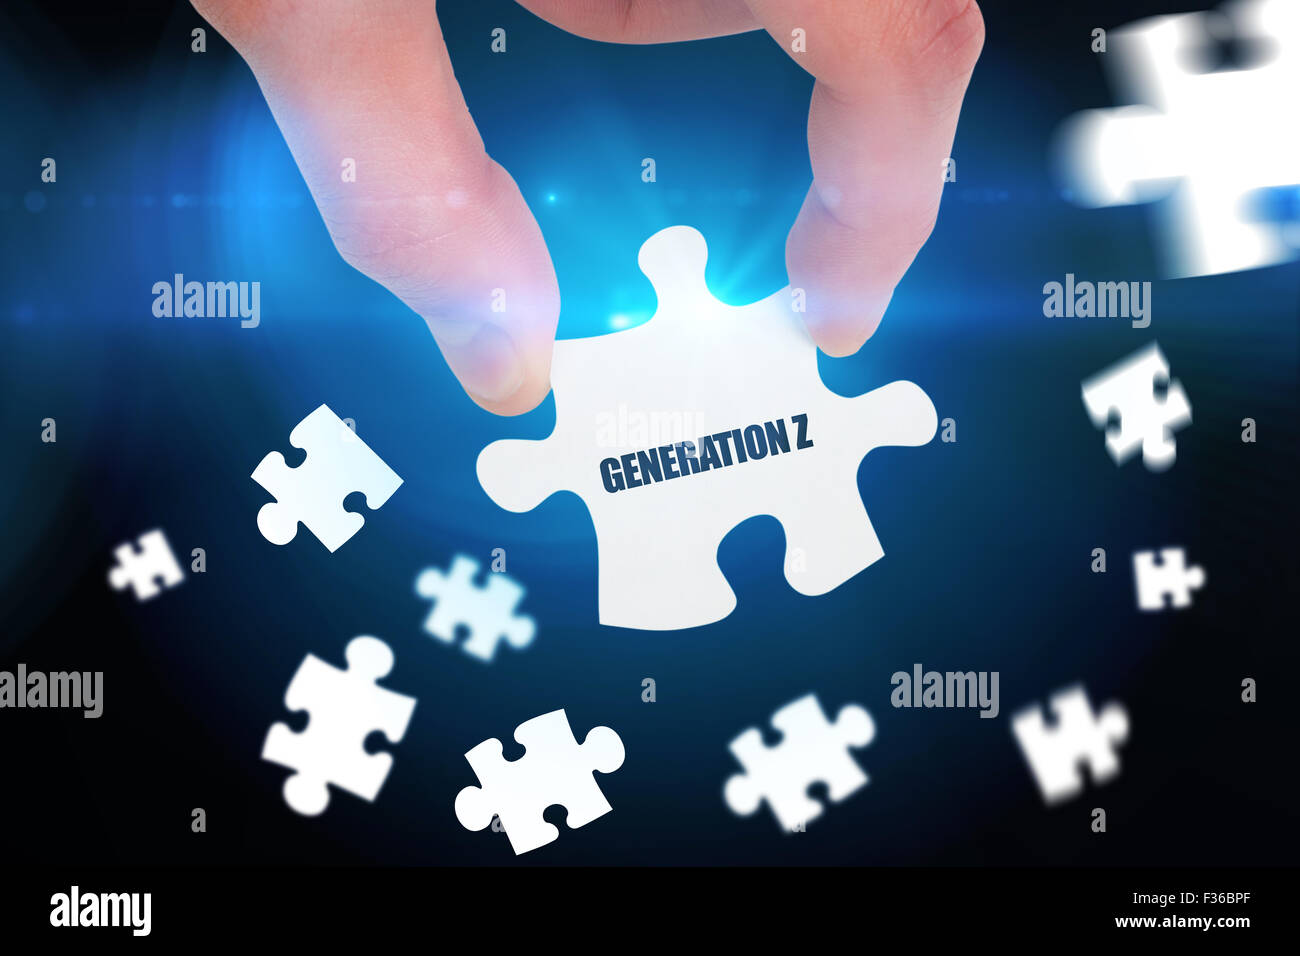 Generation z against blue background with vignette - Stock Image